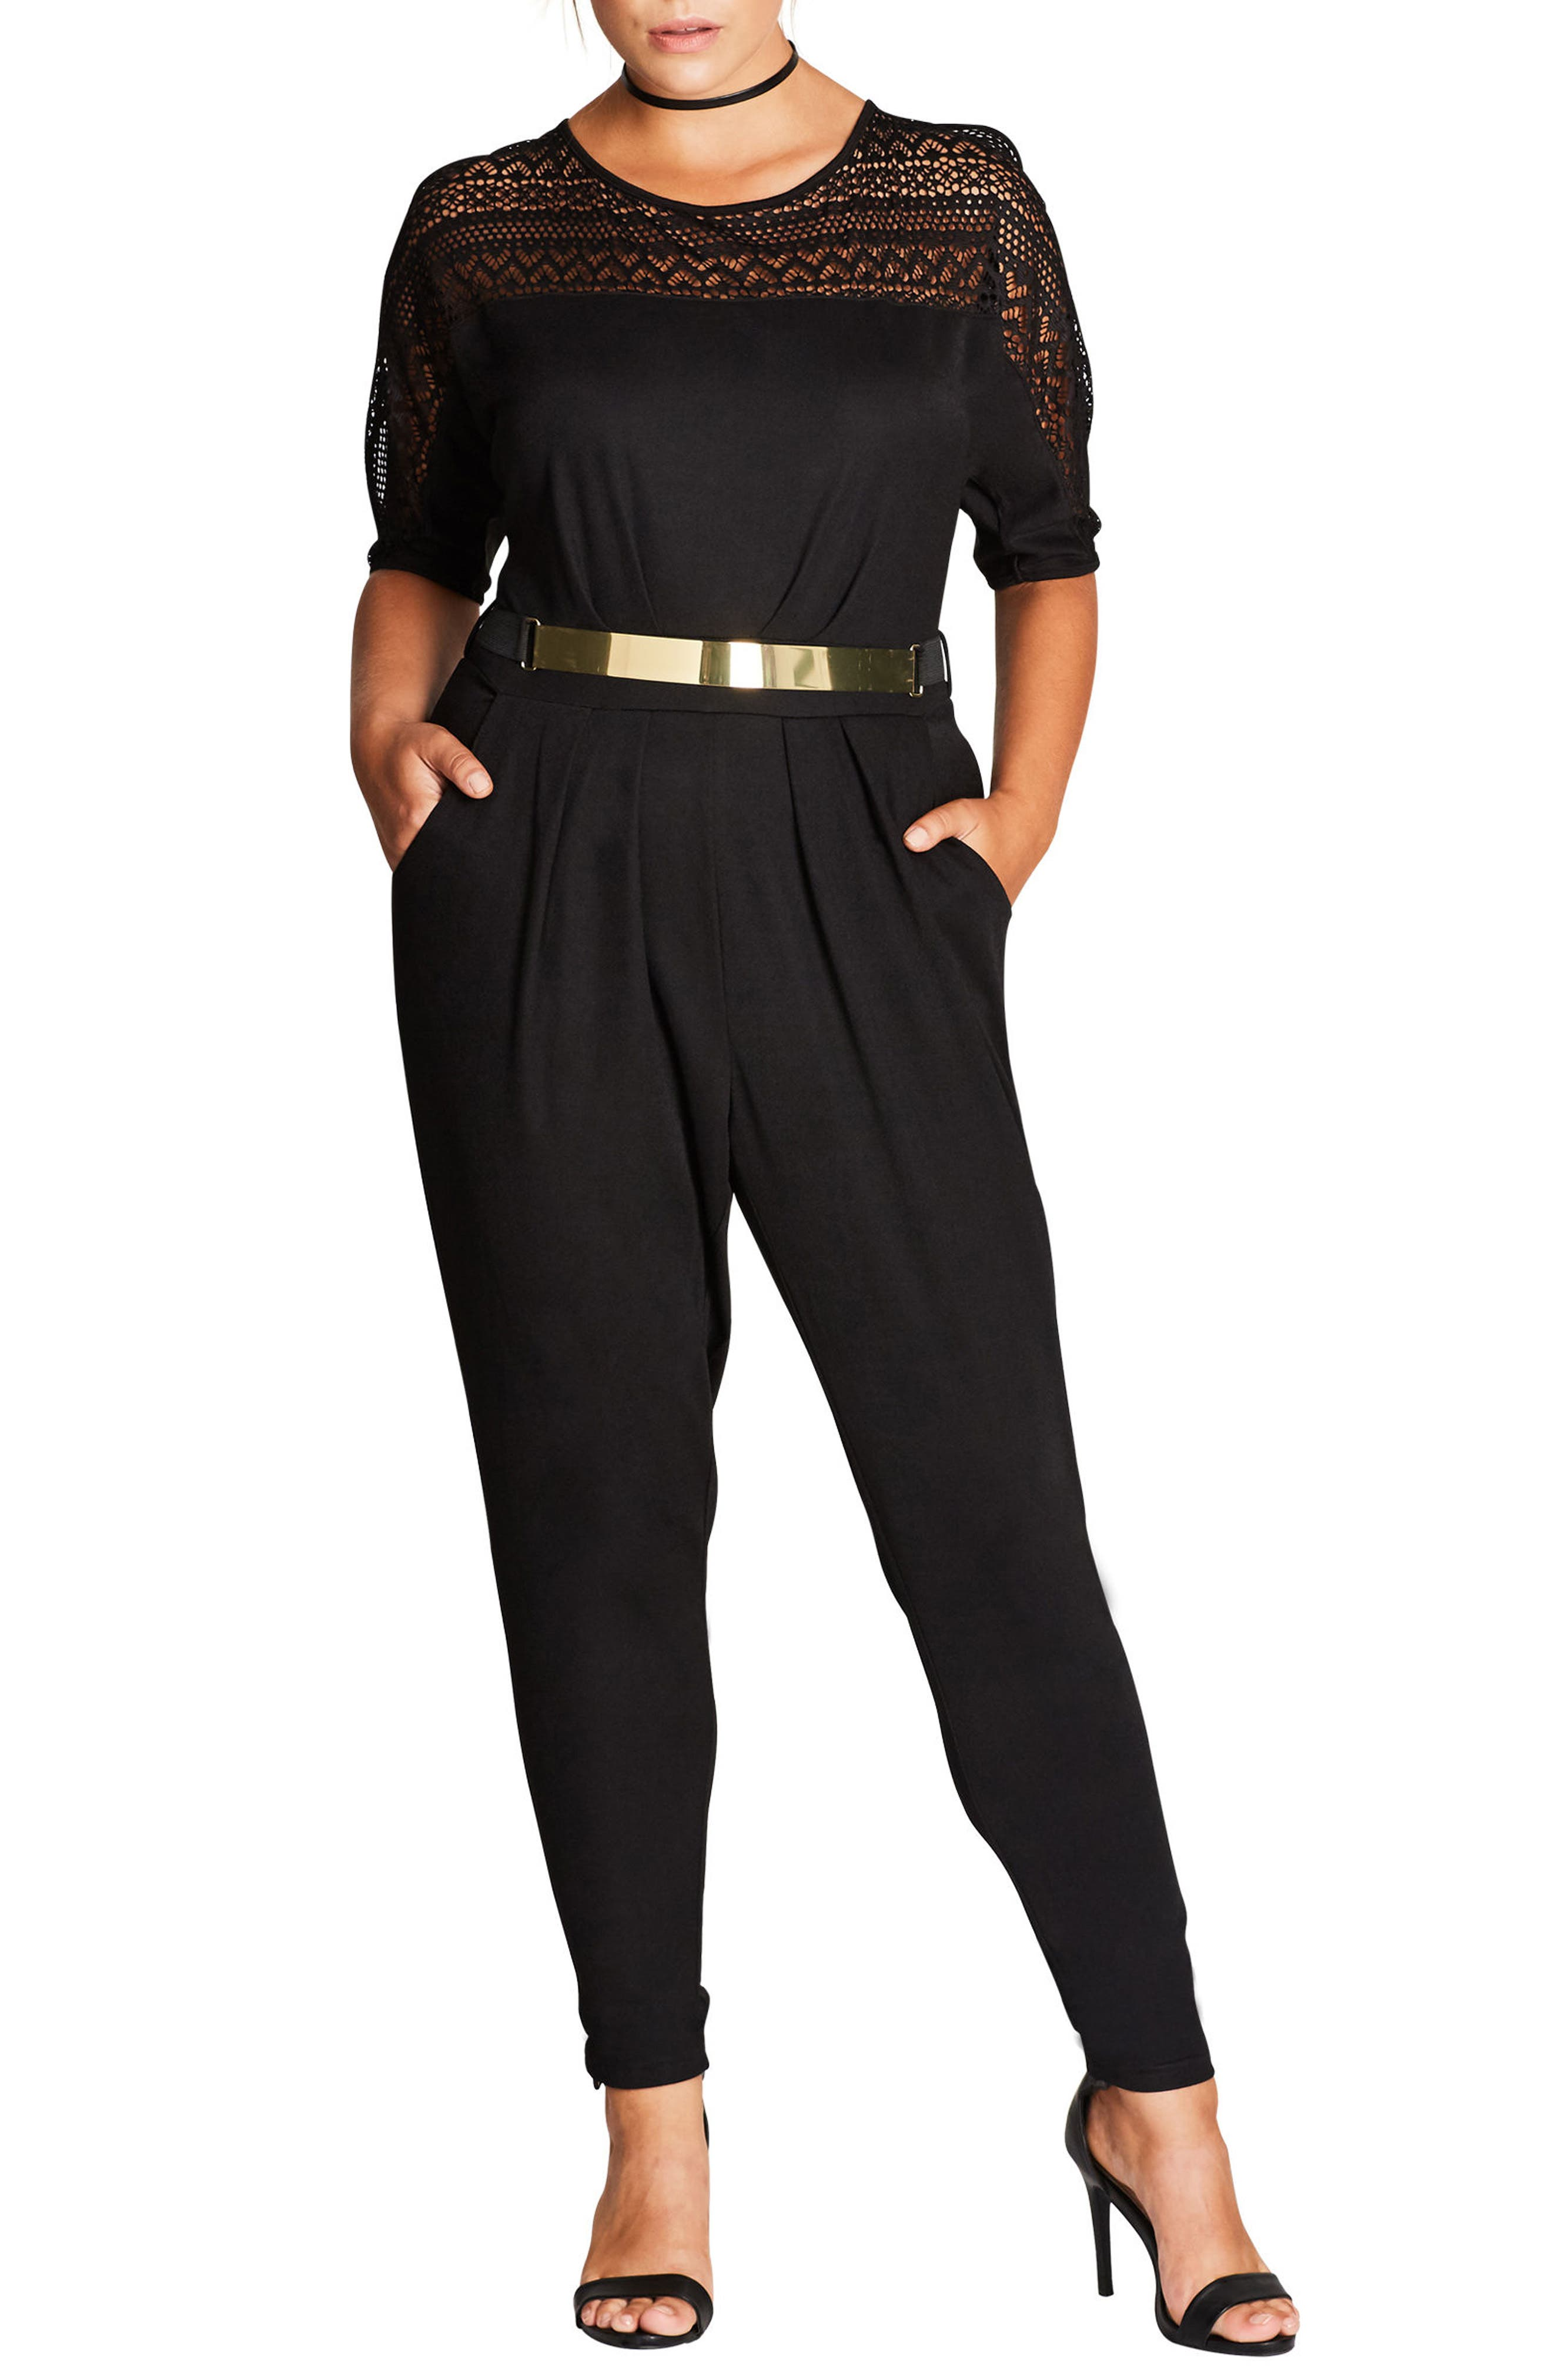 CITY CHIC Sports One Belted Jumpsuit